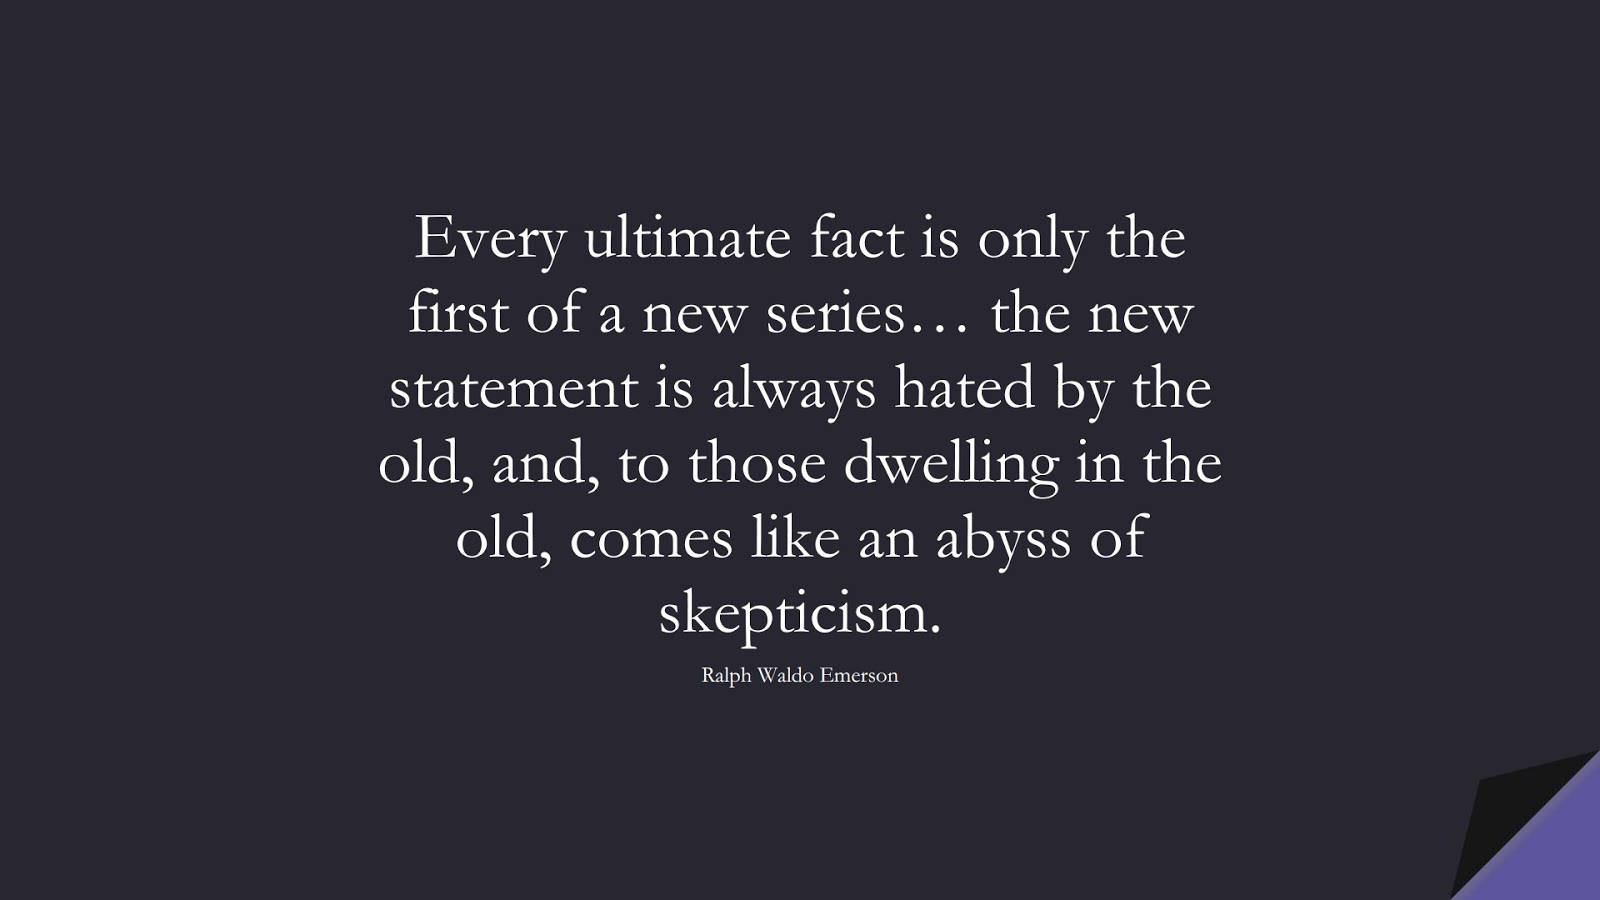 Every ultimate fact is only the first of a new series… the new statement is always hated by the old, and, to those dwelling in the old, comes like an abyss of skepticism. (Ralph Waldo Emerson);  #ChangeQuotes